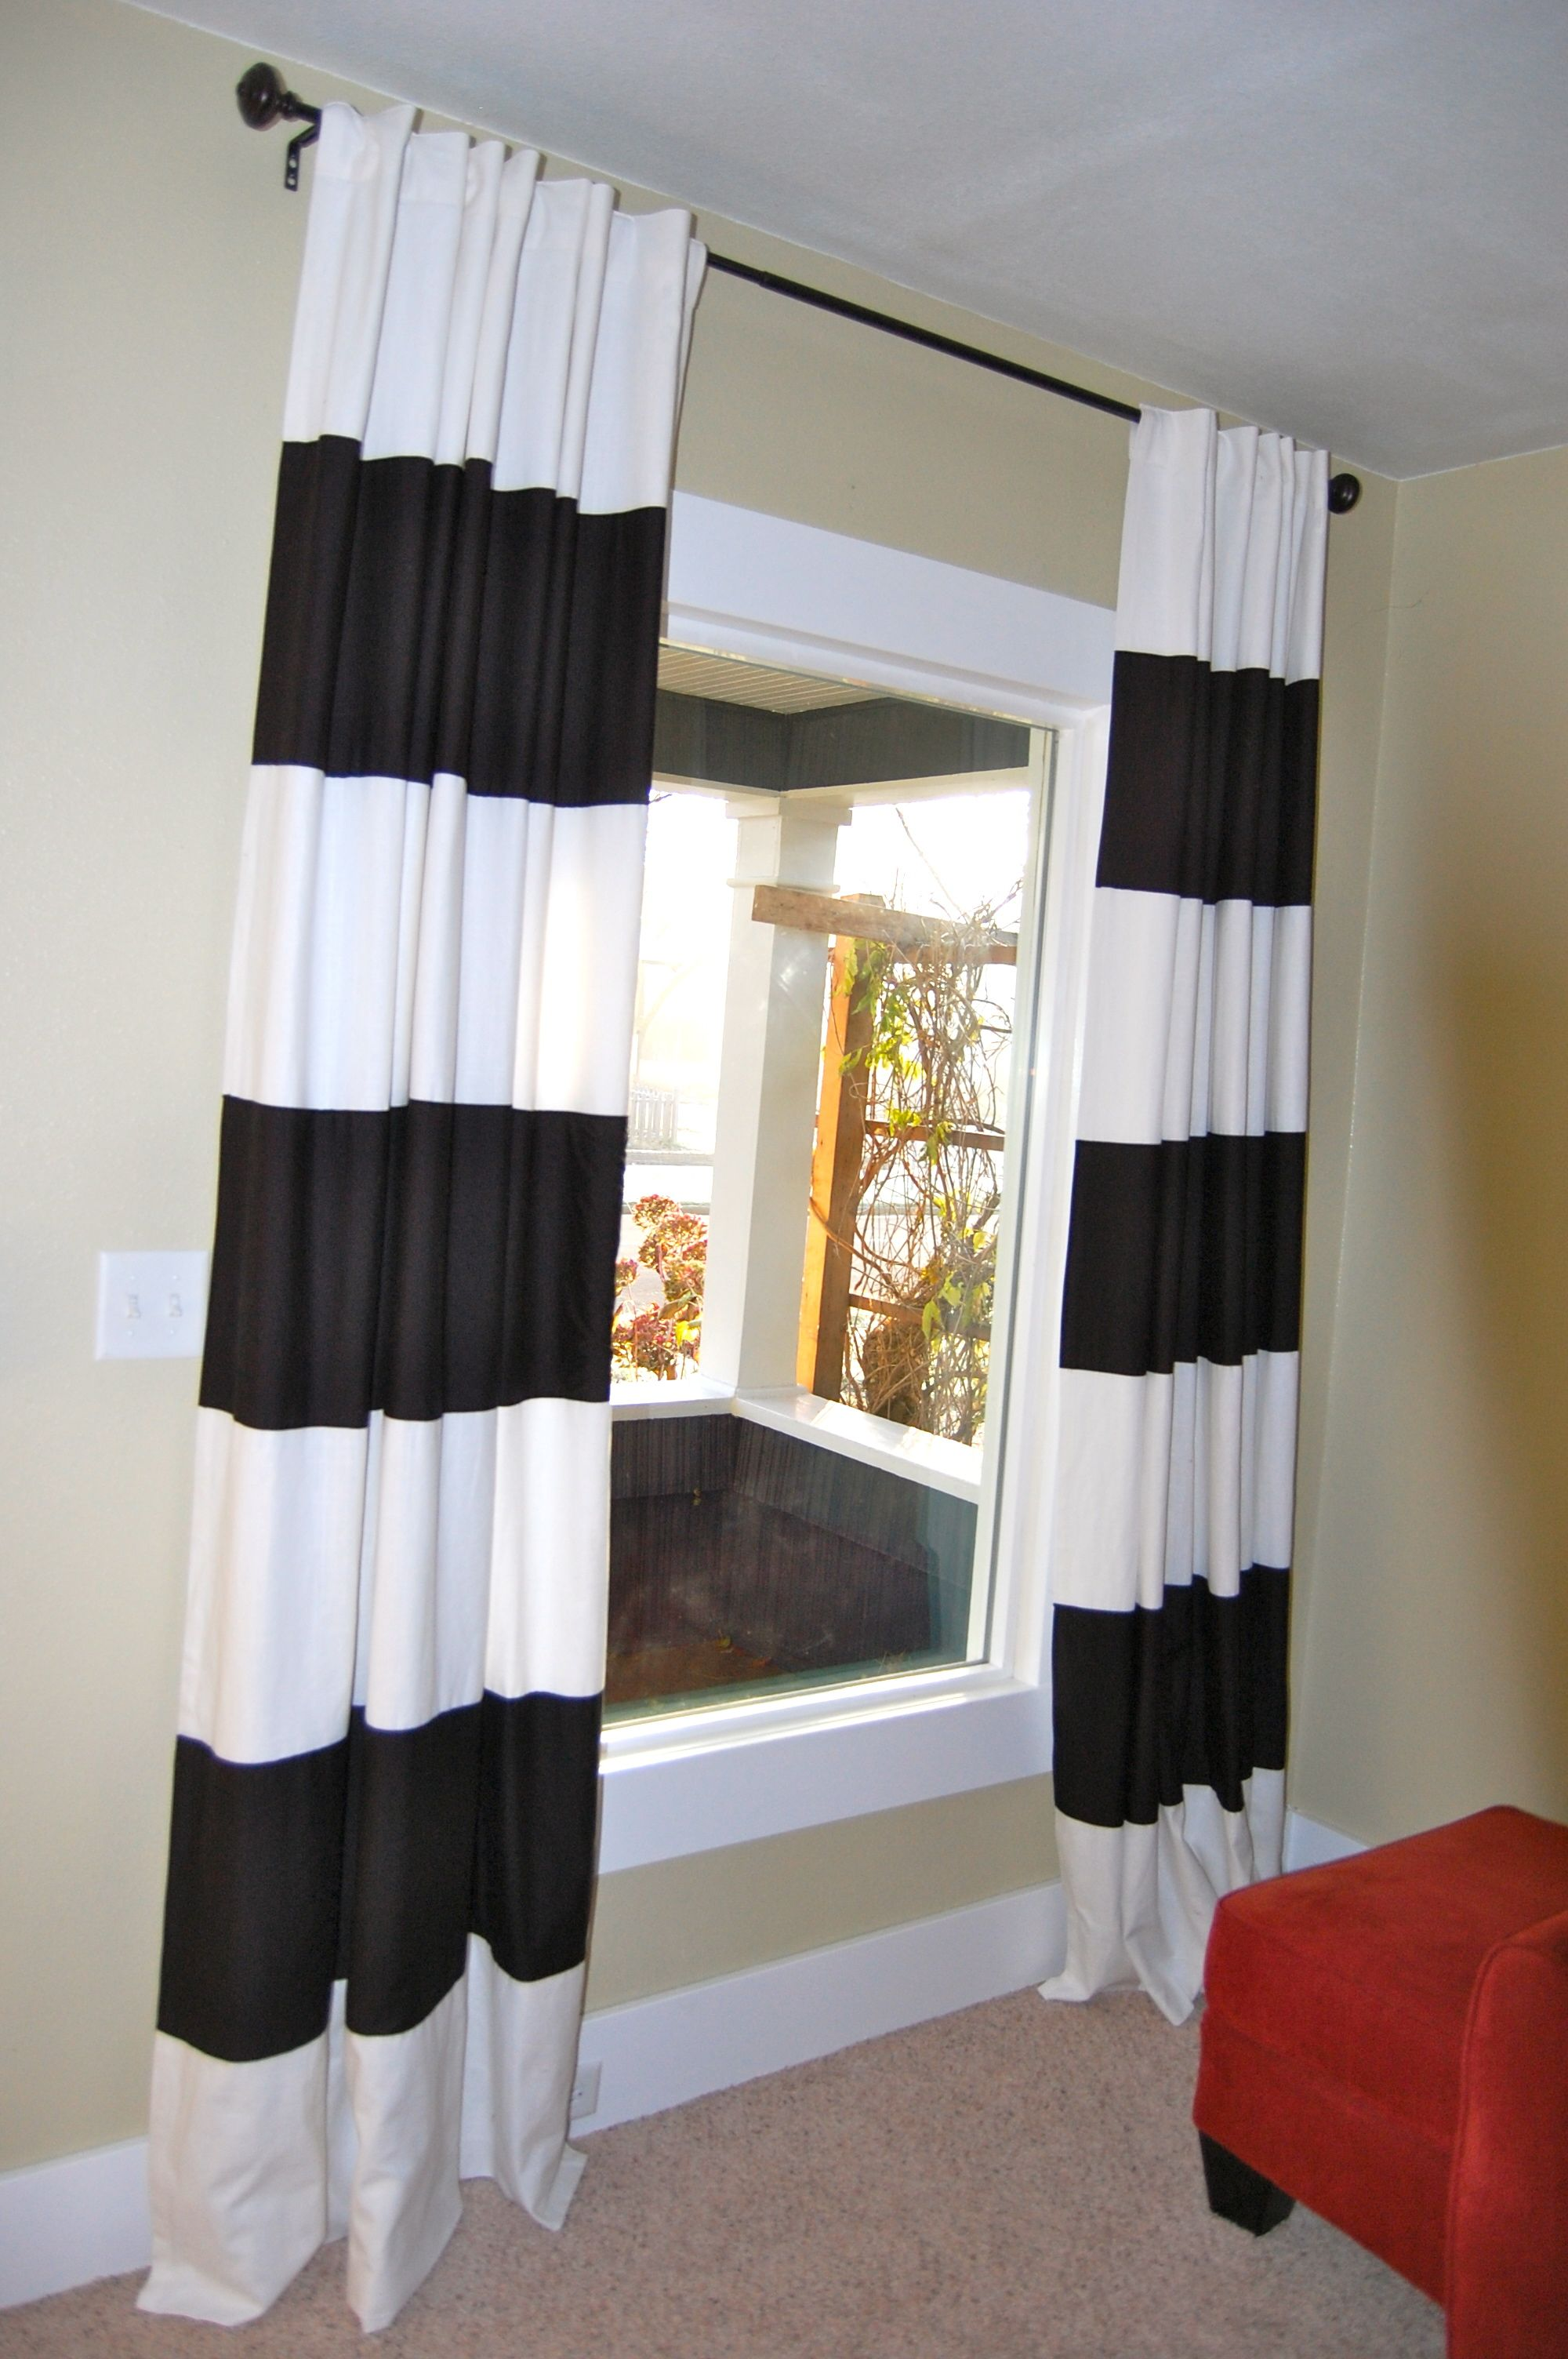 Black And White Curtains For Living Room Built In Wall Units Diy Striped Decor Ideas Dsc 0012 14 Curtain From Ikea Sewn Stripes Sheets Walmart